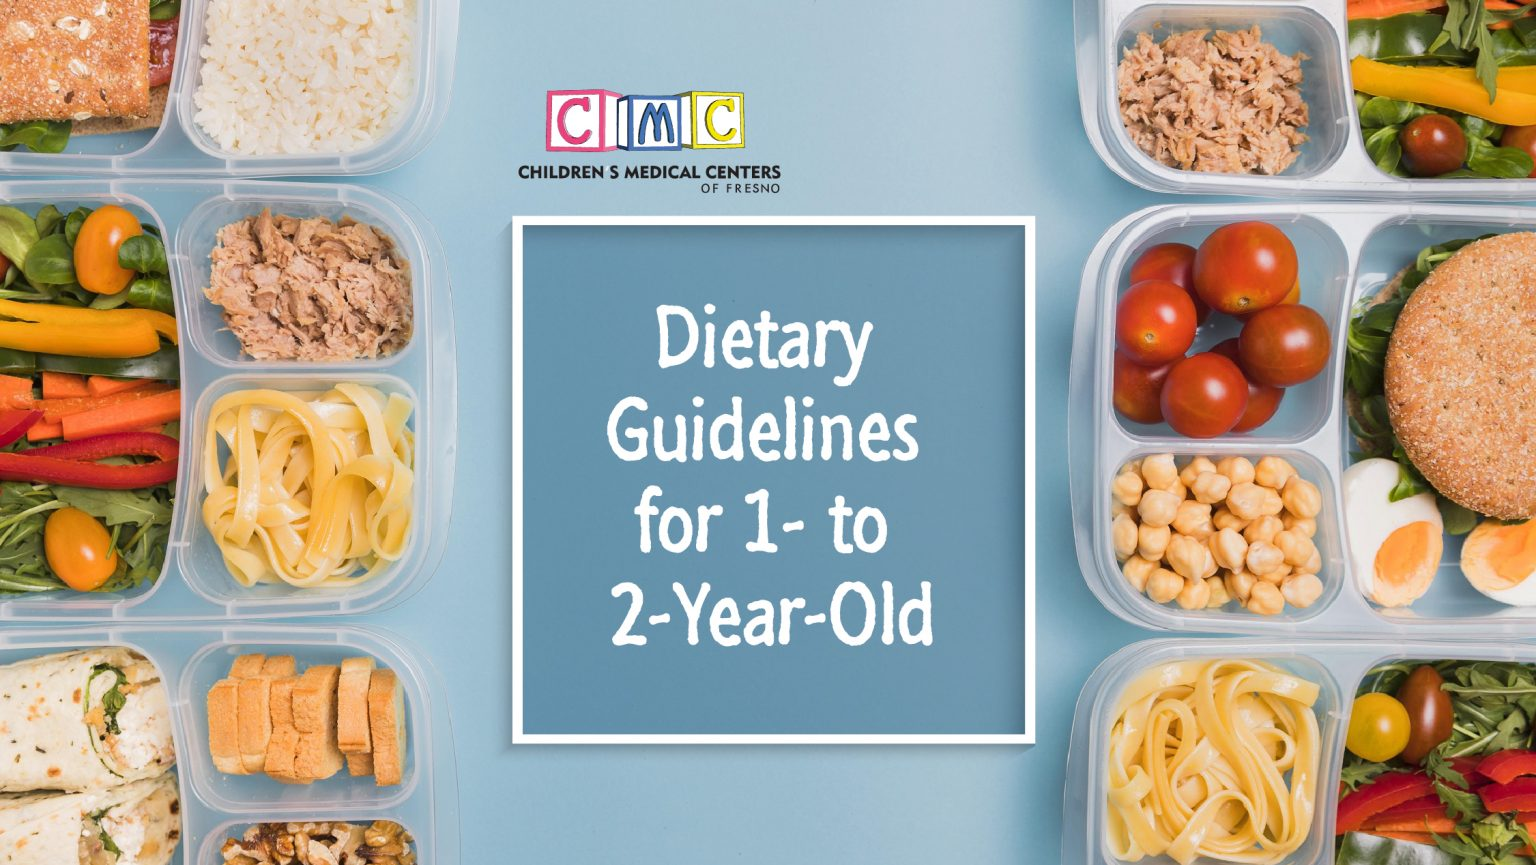 dietary guidelines for child and adolescent